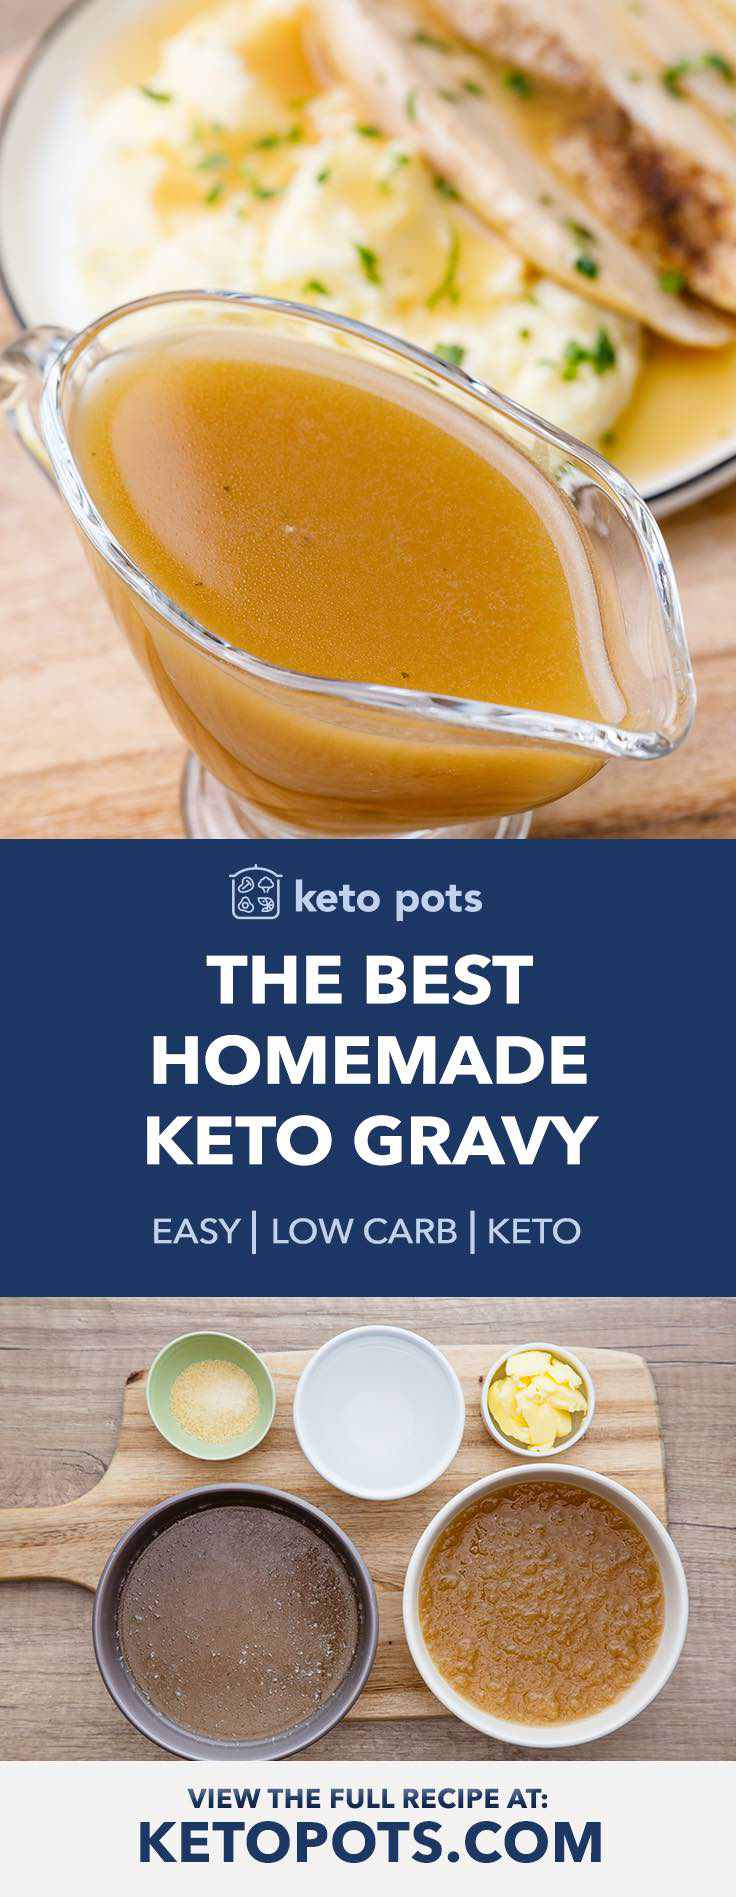 This homemade keto gravy is to-die-for.